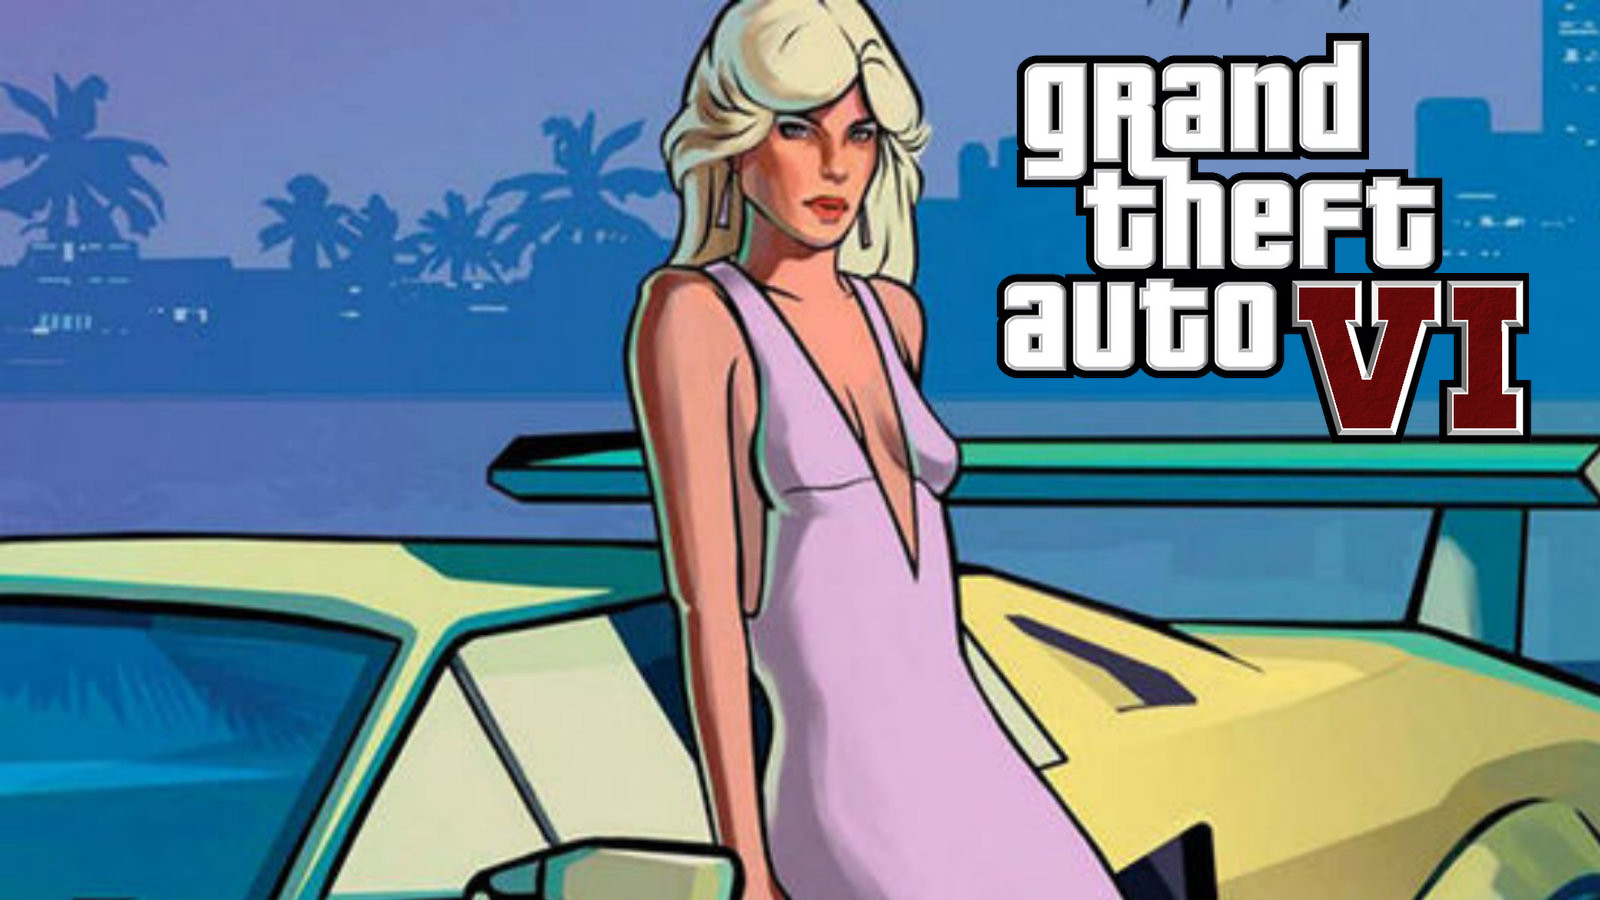 GTA Vice City as GTA 6